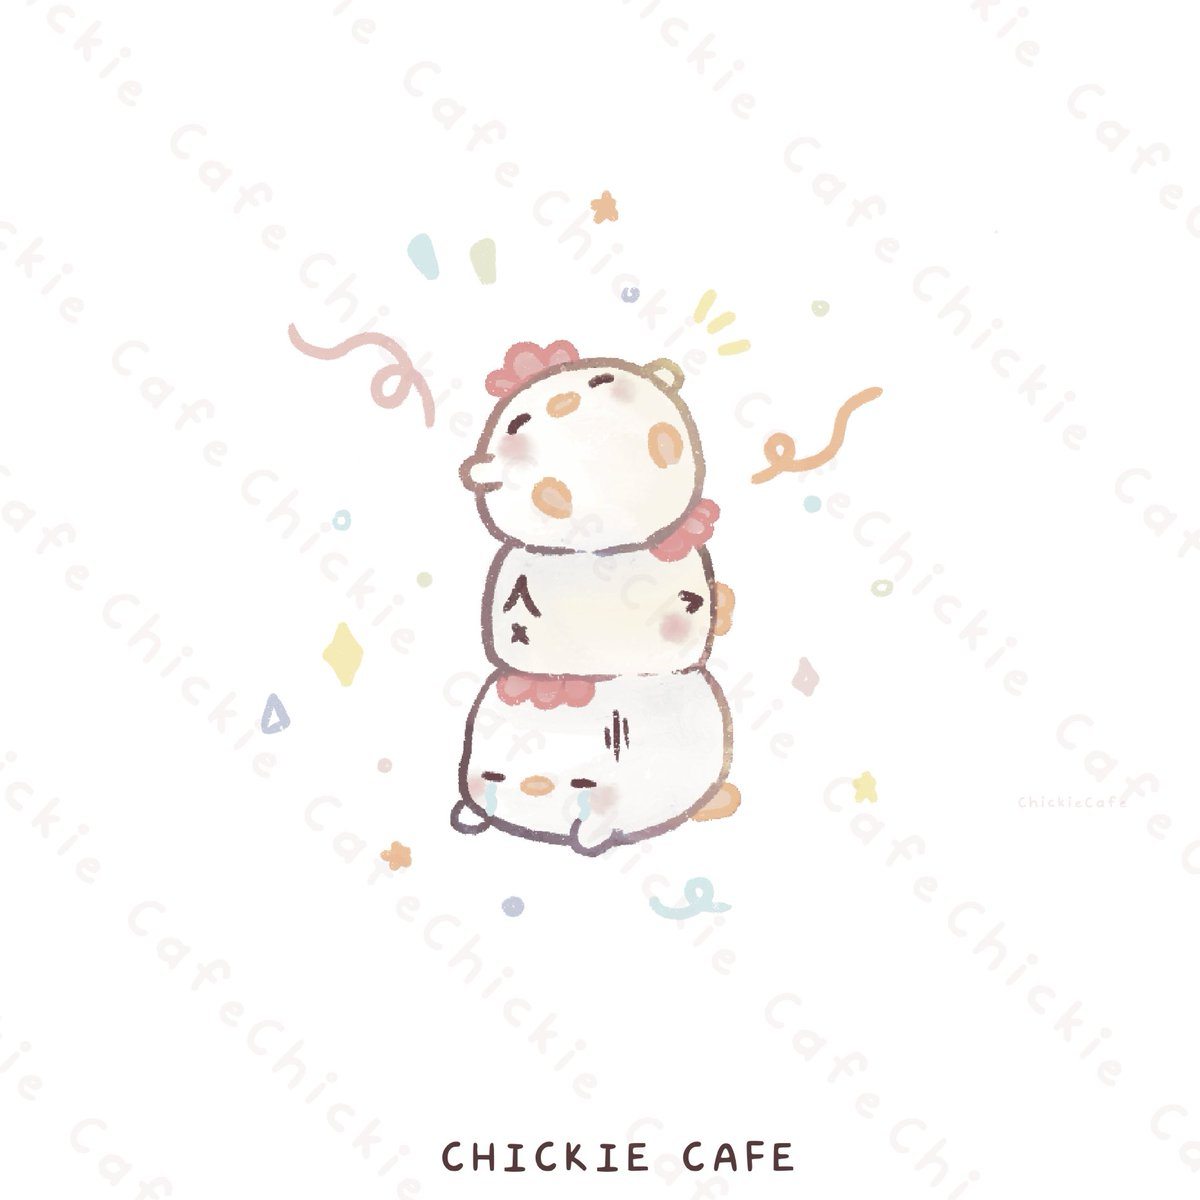 Chickie Tower  #illustration #drawing https://t.co/WXZQZWP0TS